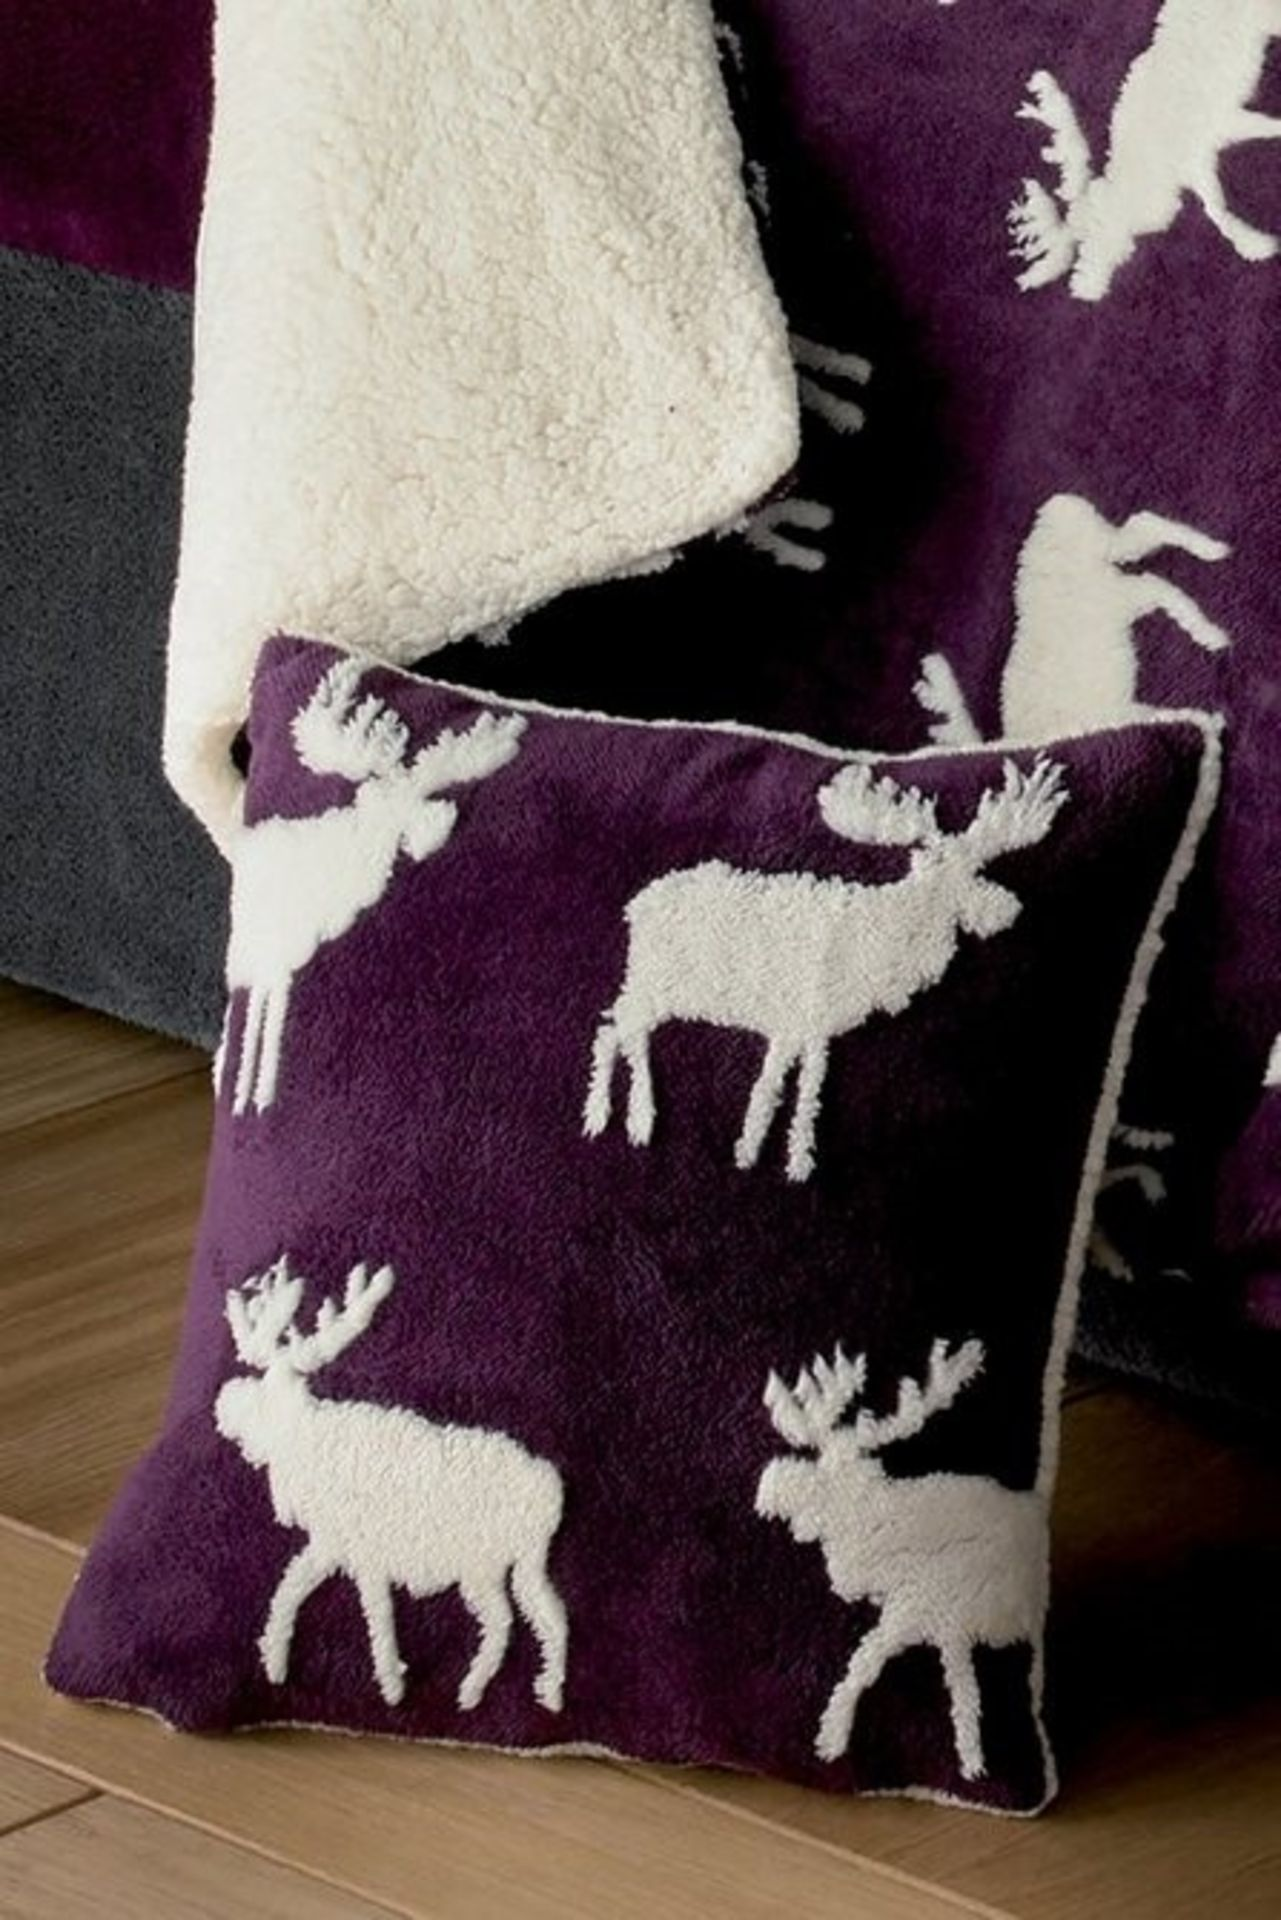 Lot 31 - 1 BAGGED WARM AND COSY TEDDY 3D STAG CUSHION COVER IN PLUM (PUBLIC VIEWING AVAILABLE)